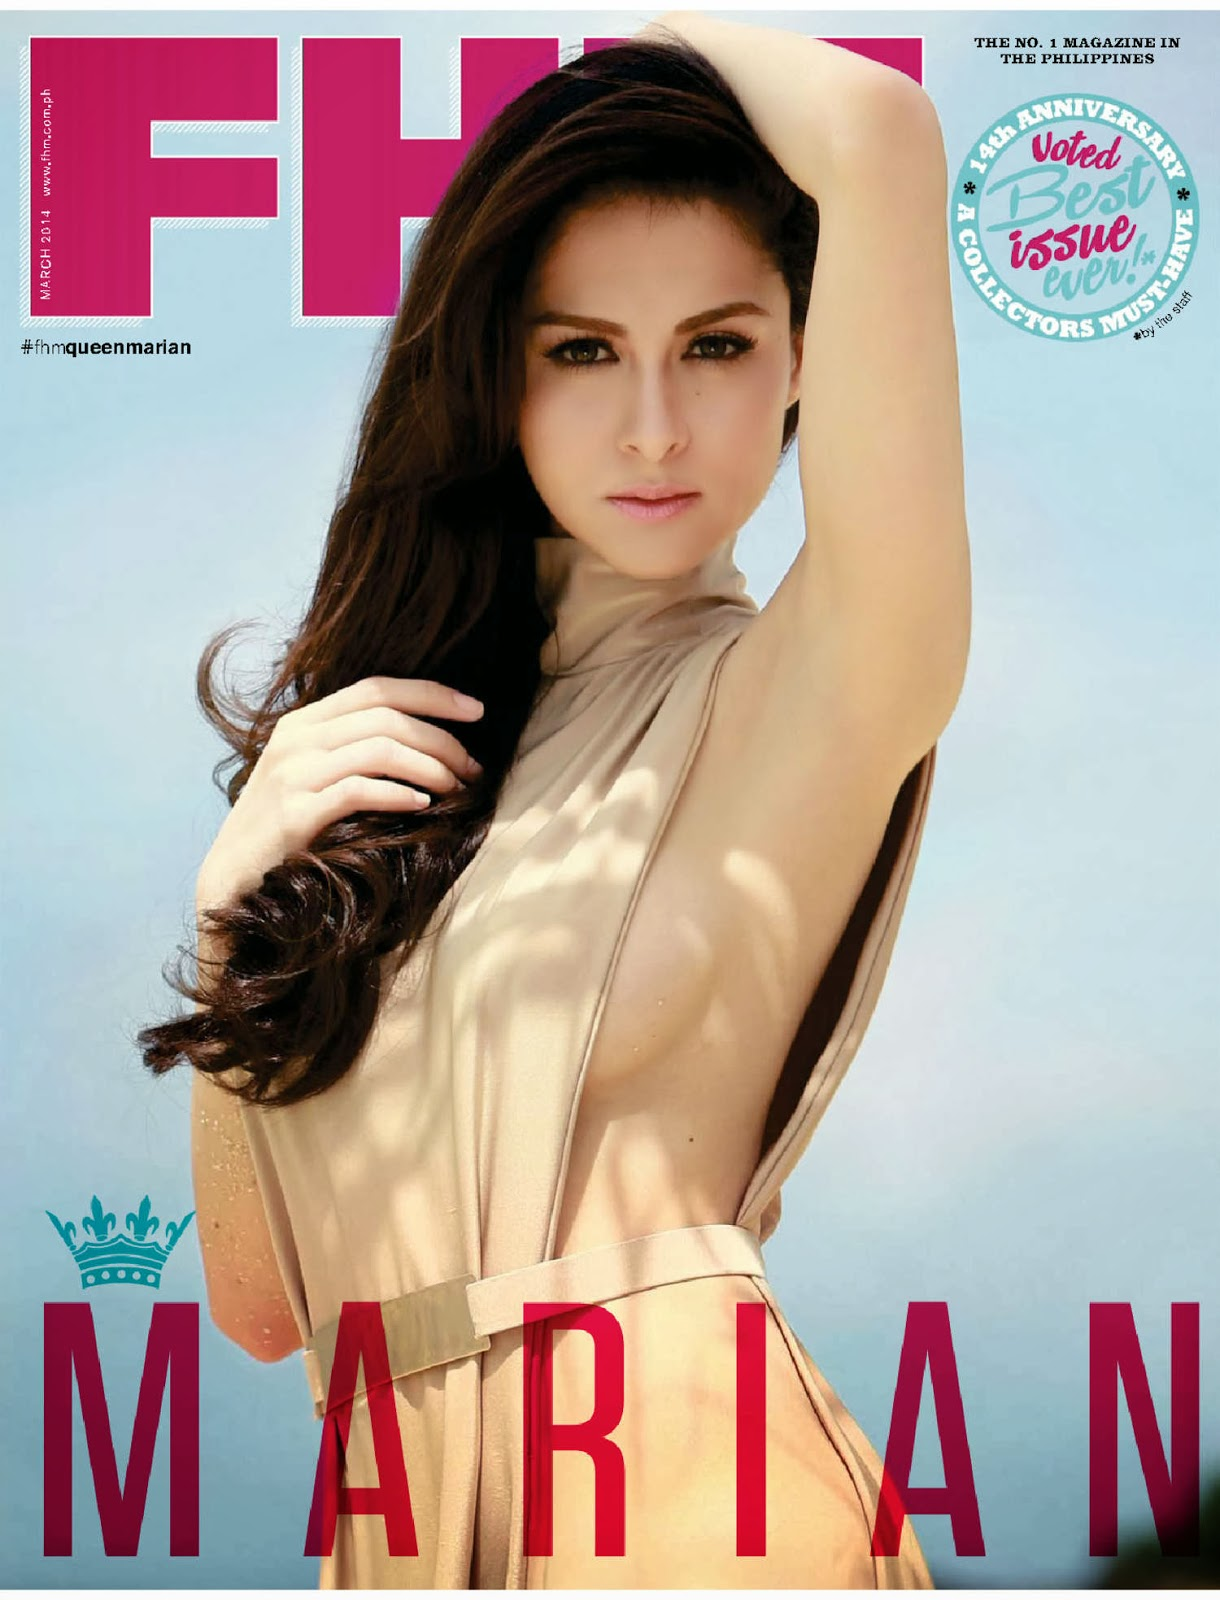 The Charmer Pages : Marian Rivera